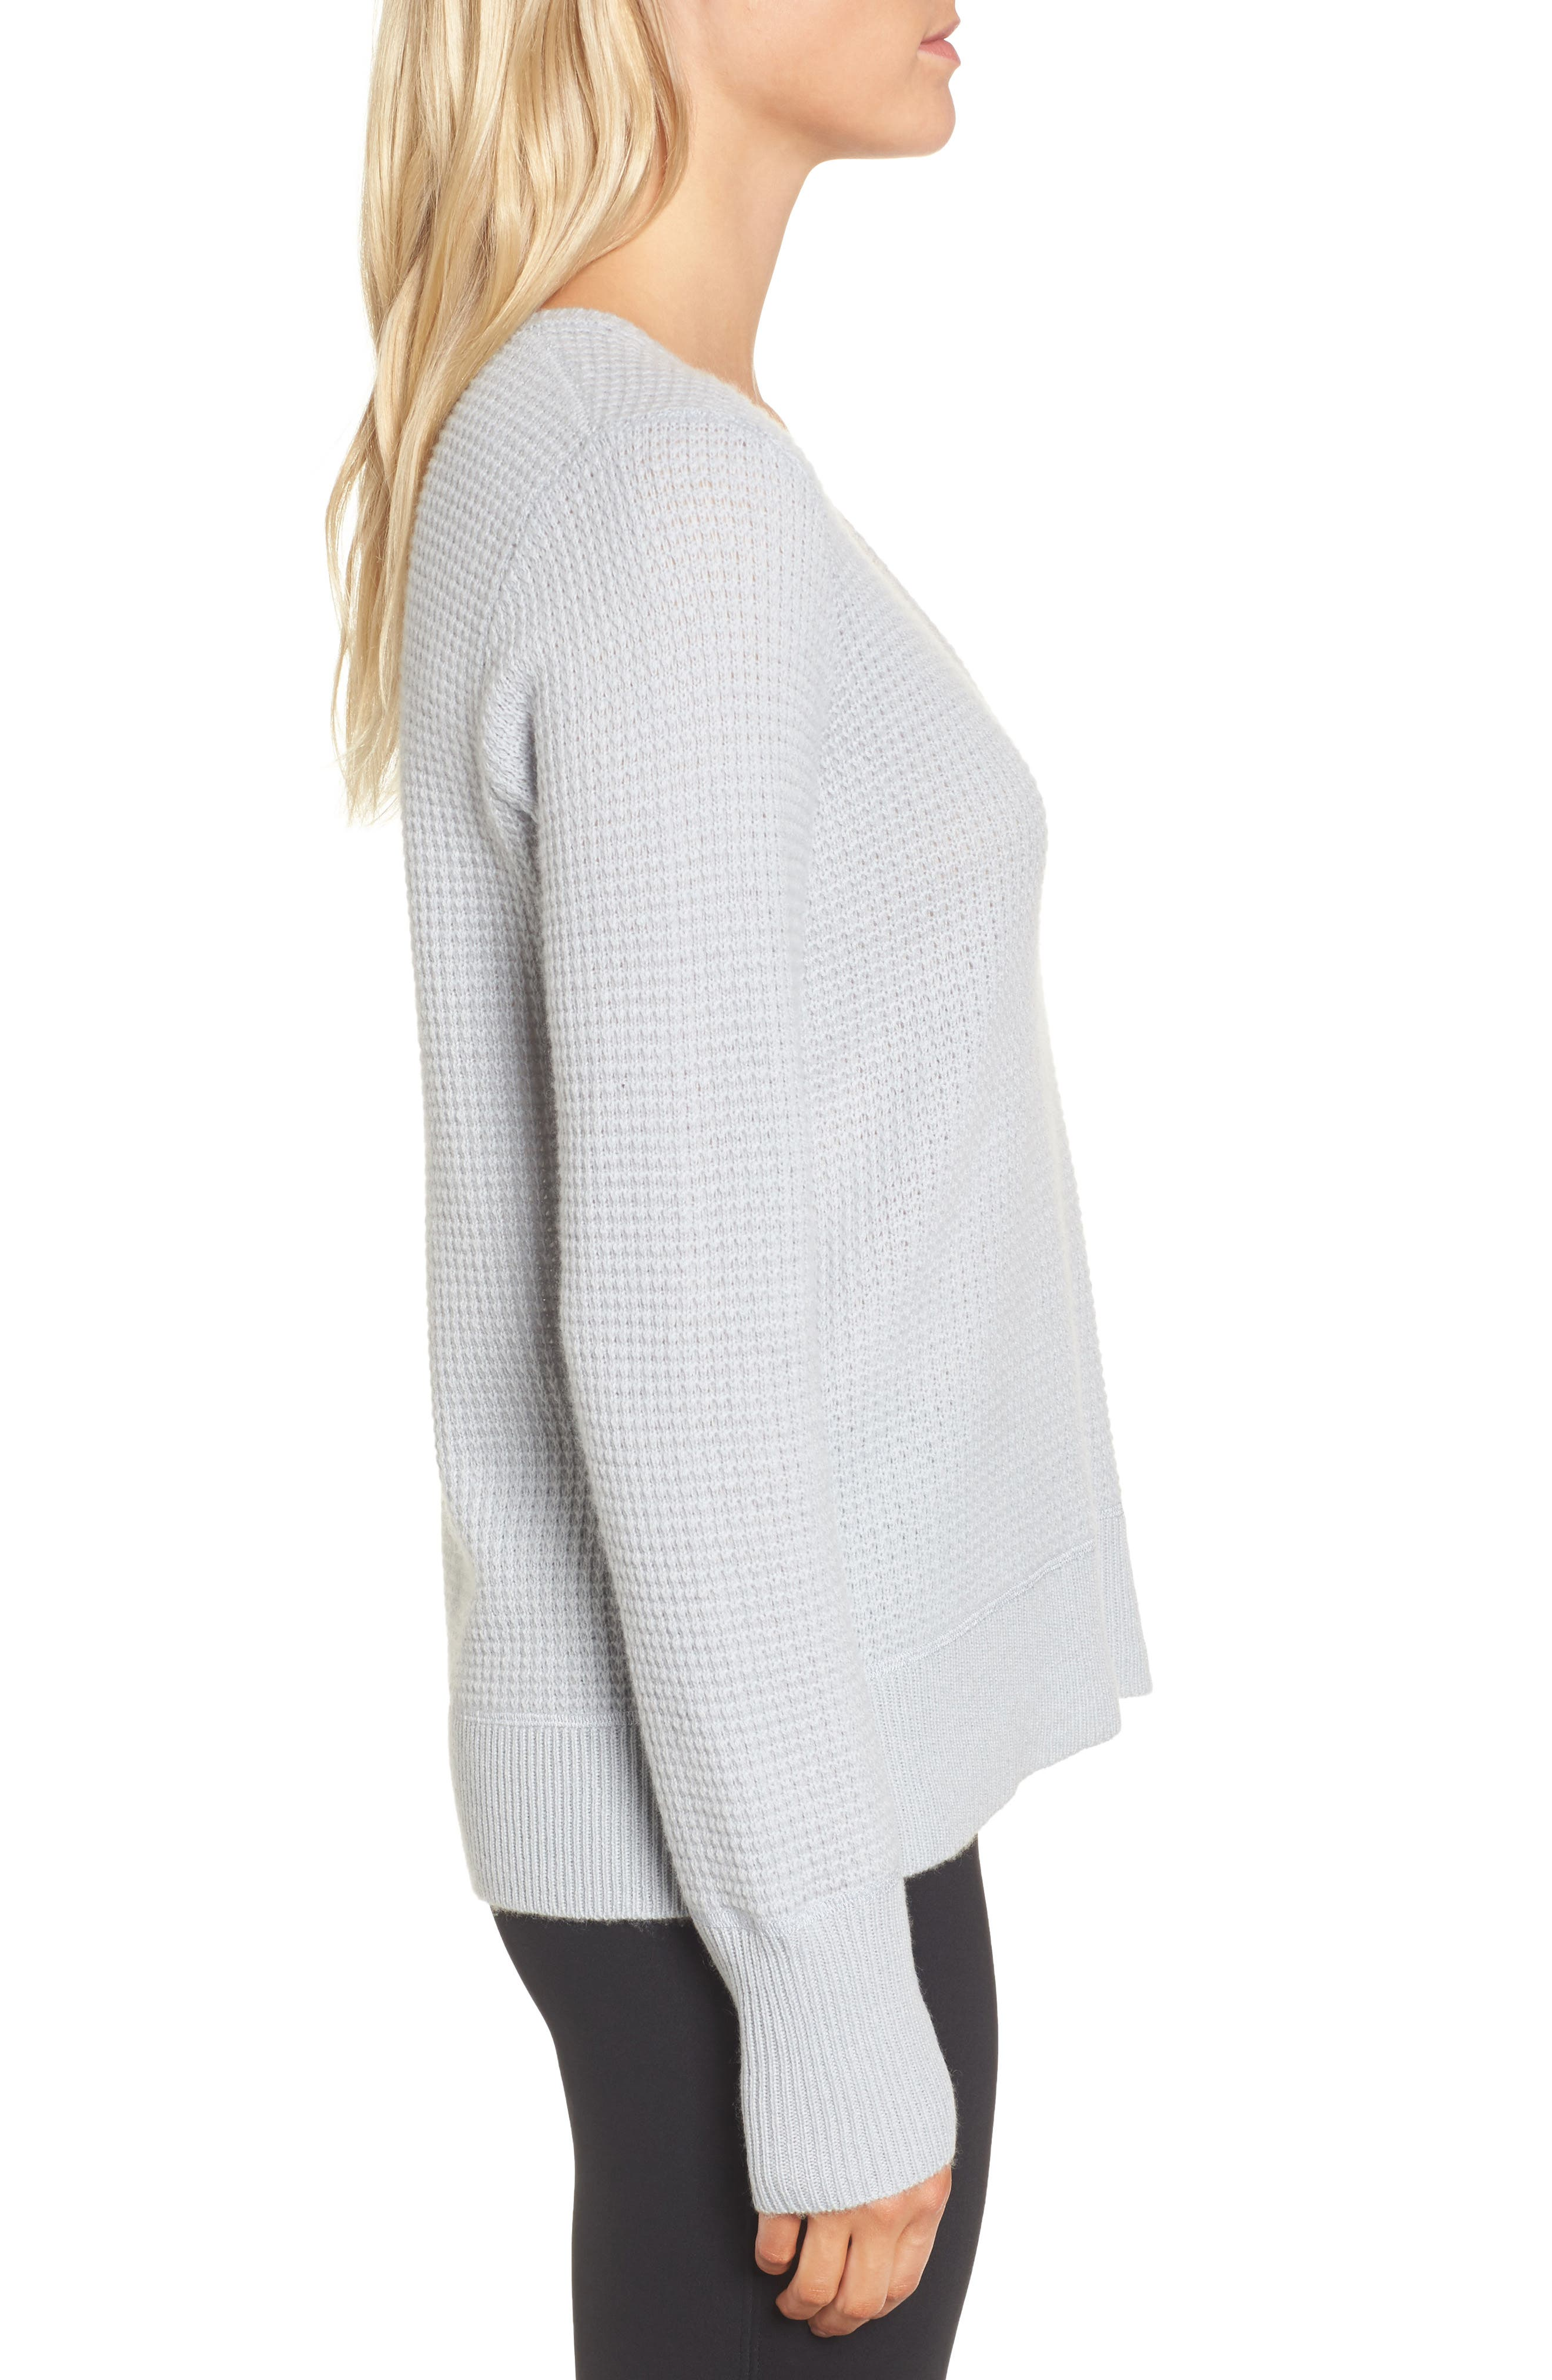 Cashmere Thermal Sweater,                             Alternate thumbnail 3, color,                             456